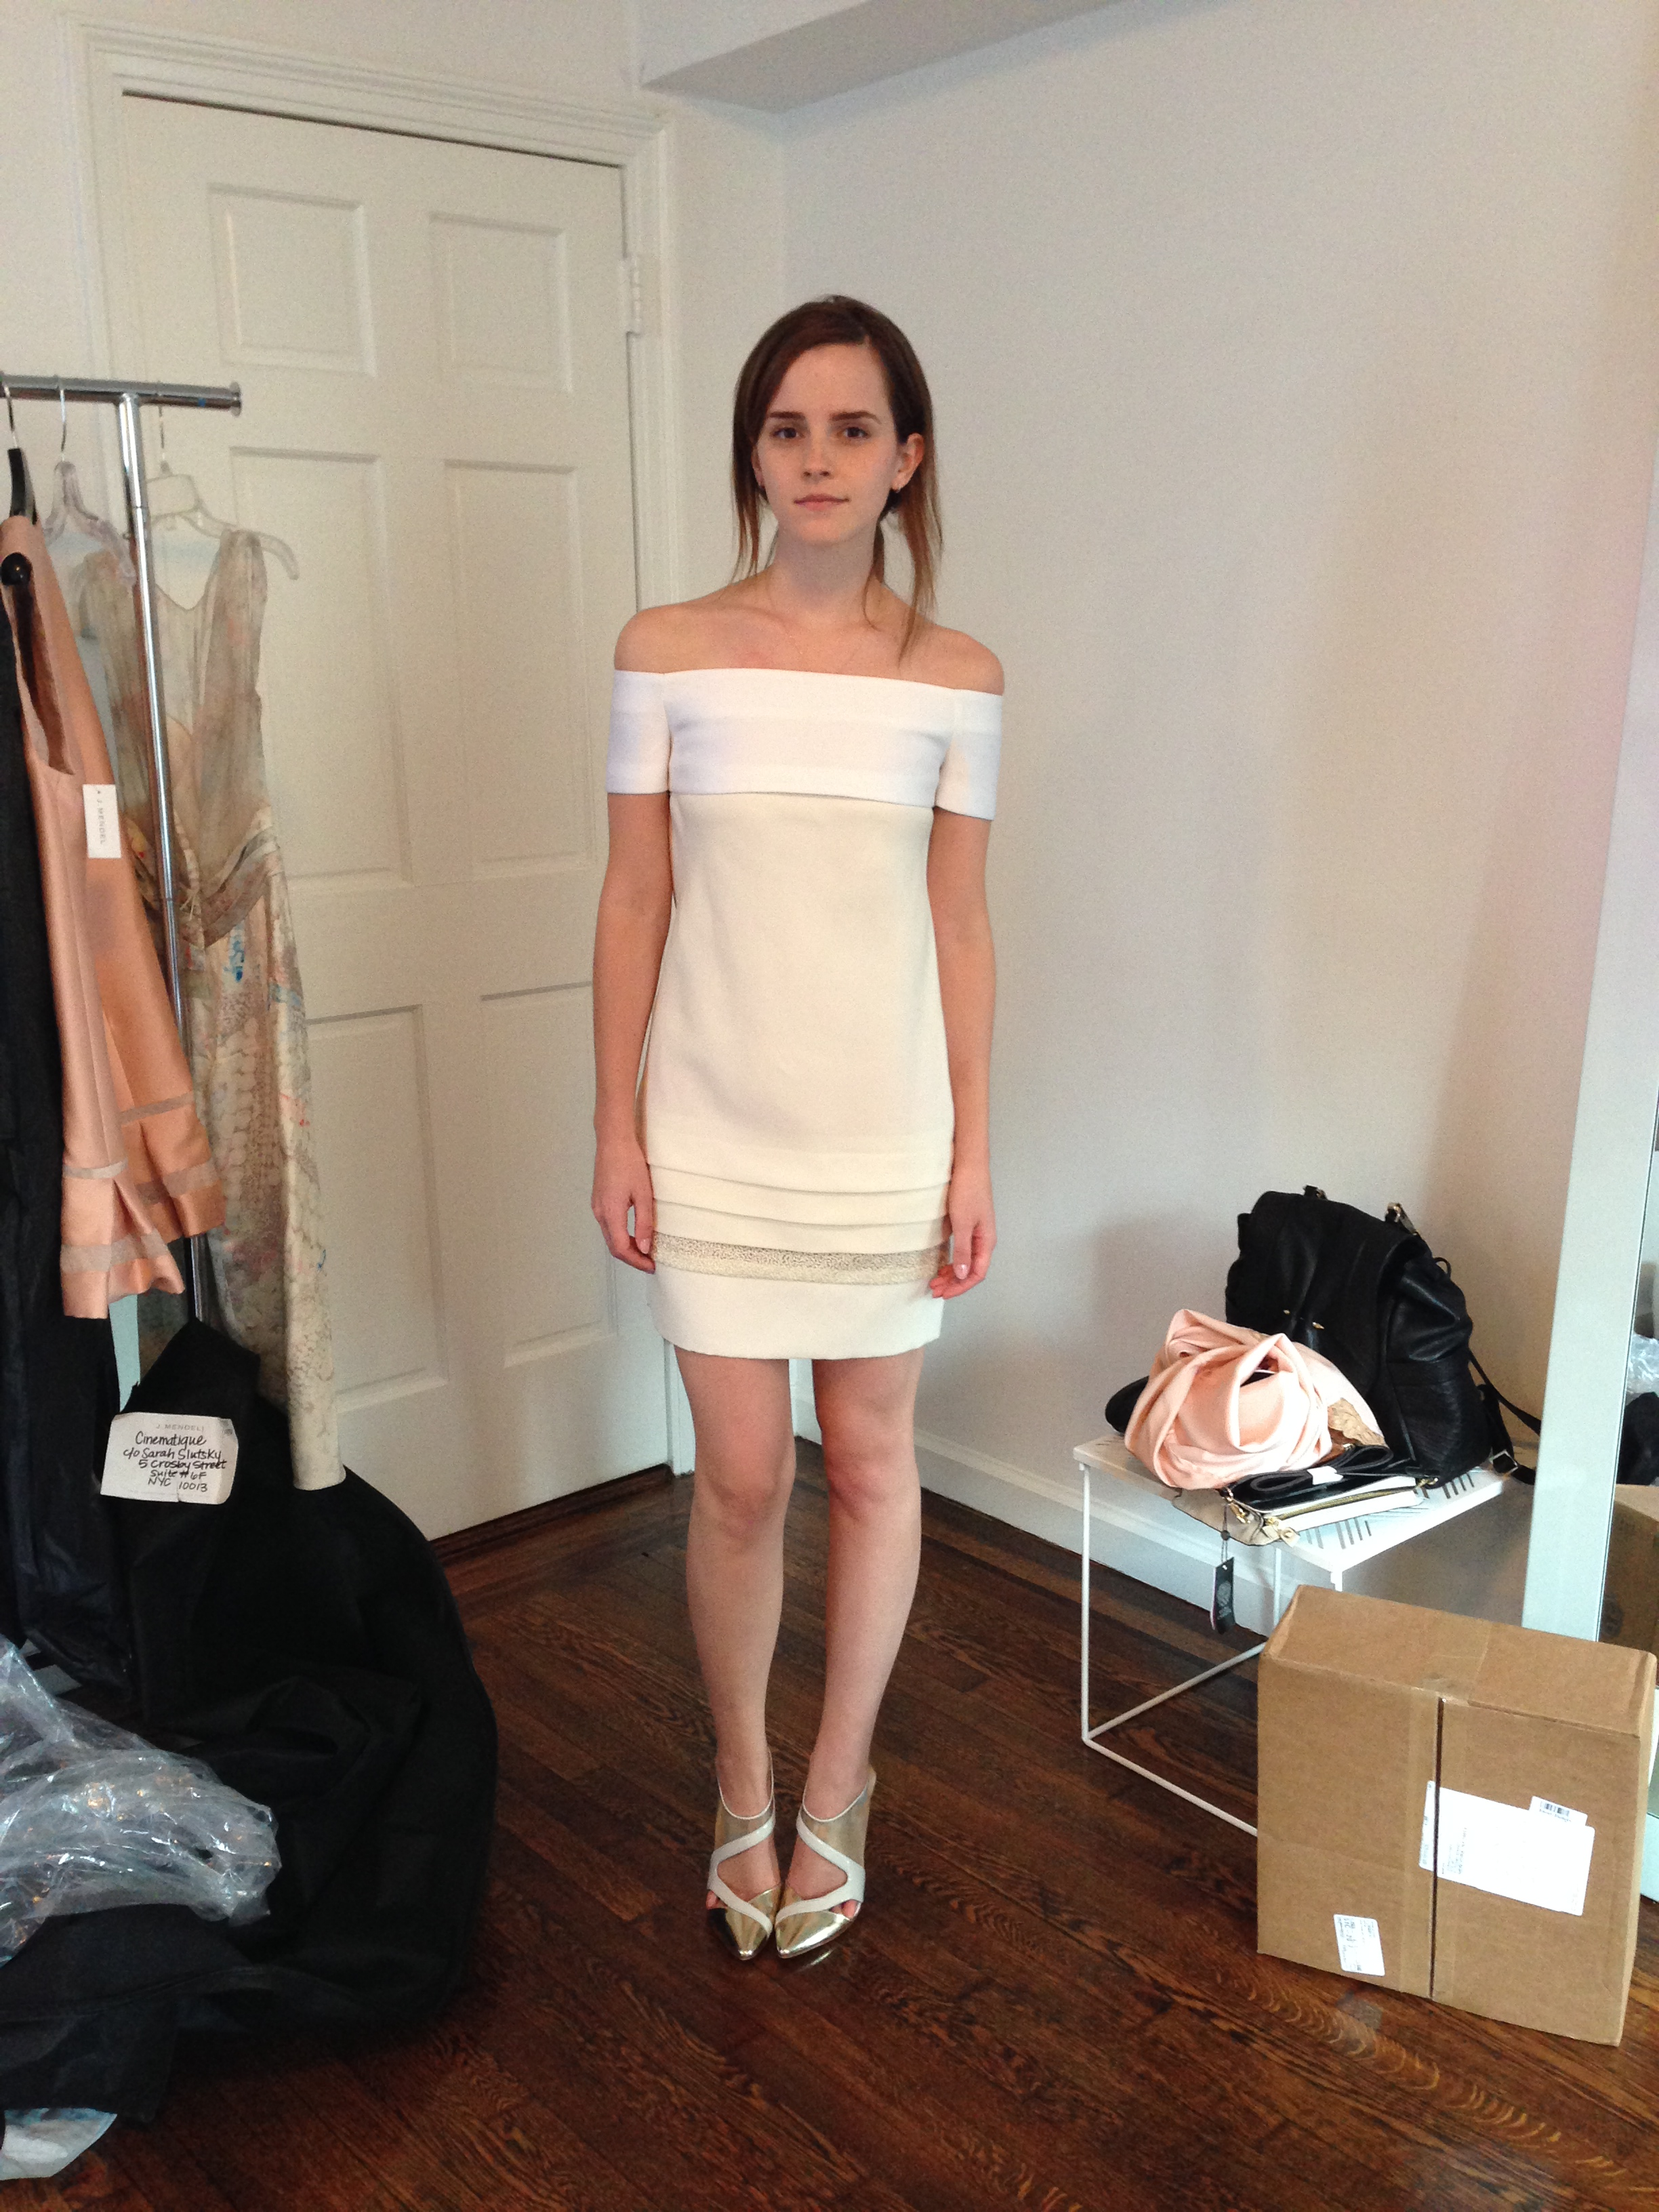 The complete collection of leaked photos of Emma Watson ...